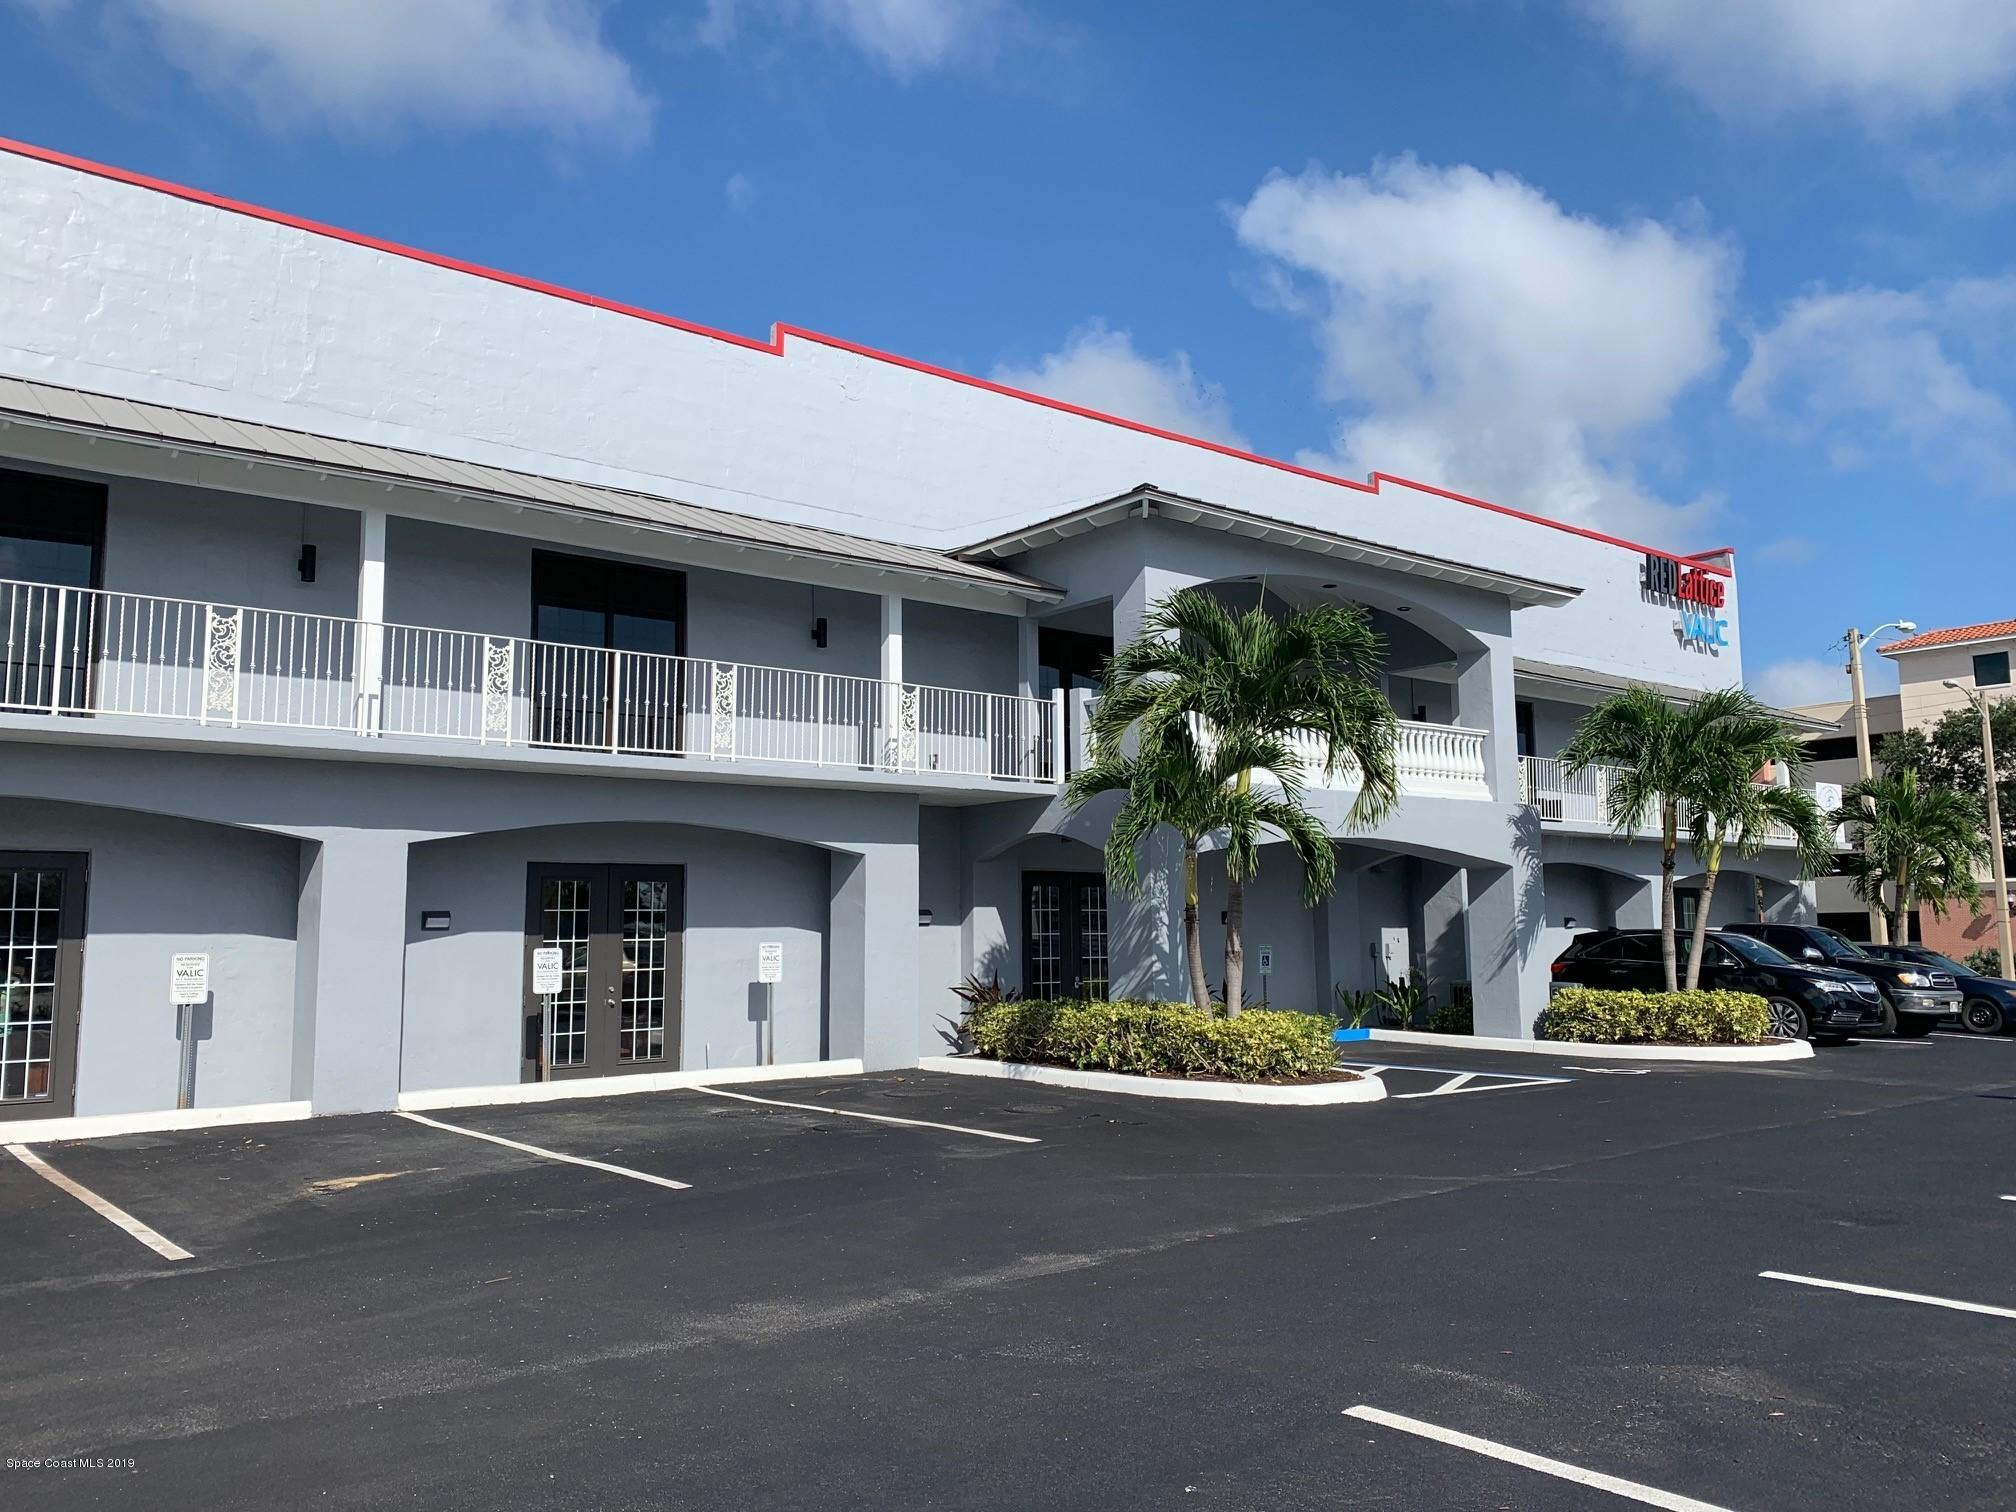 Commercial for Rent at 907 E Strawbridge Melbourne, Florida 32901 United States